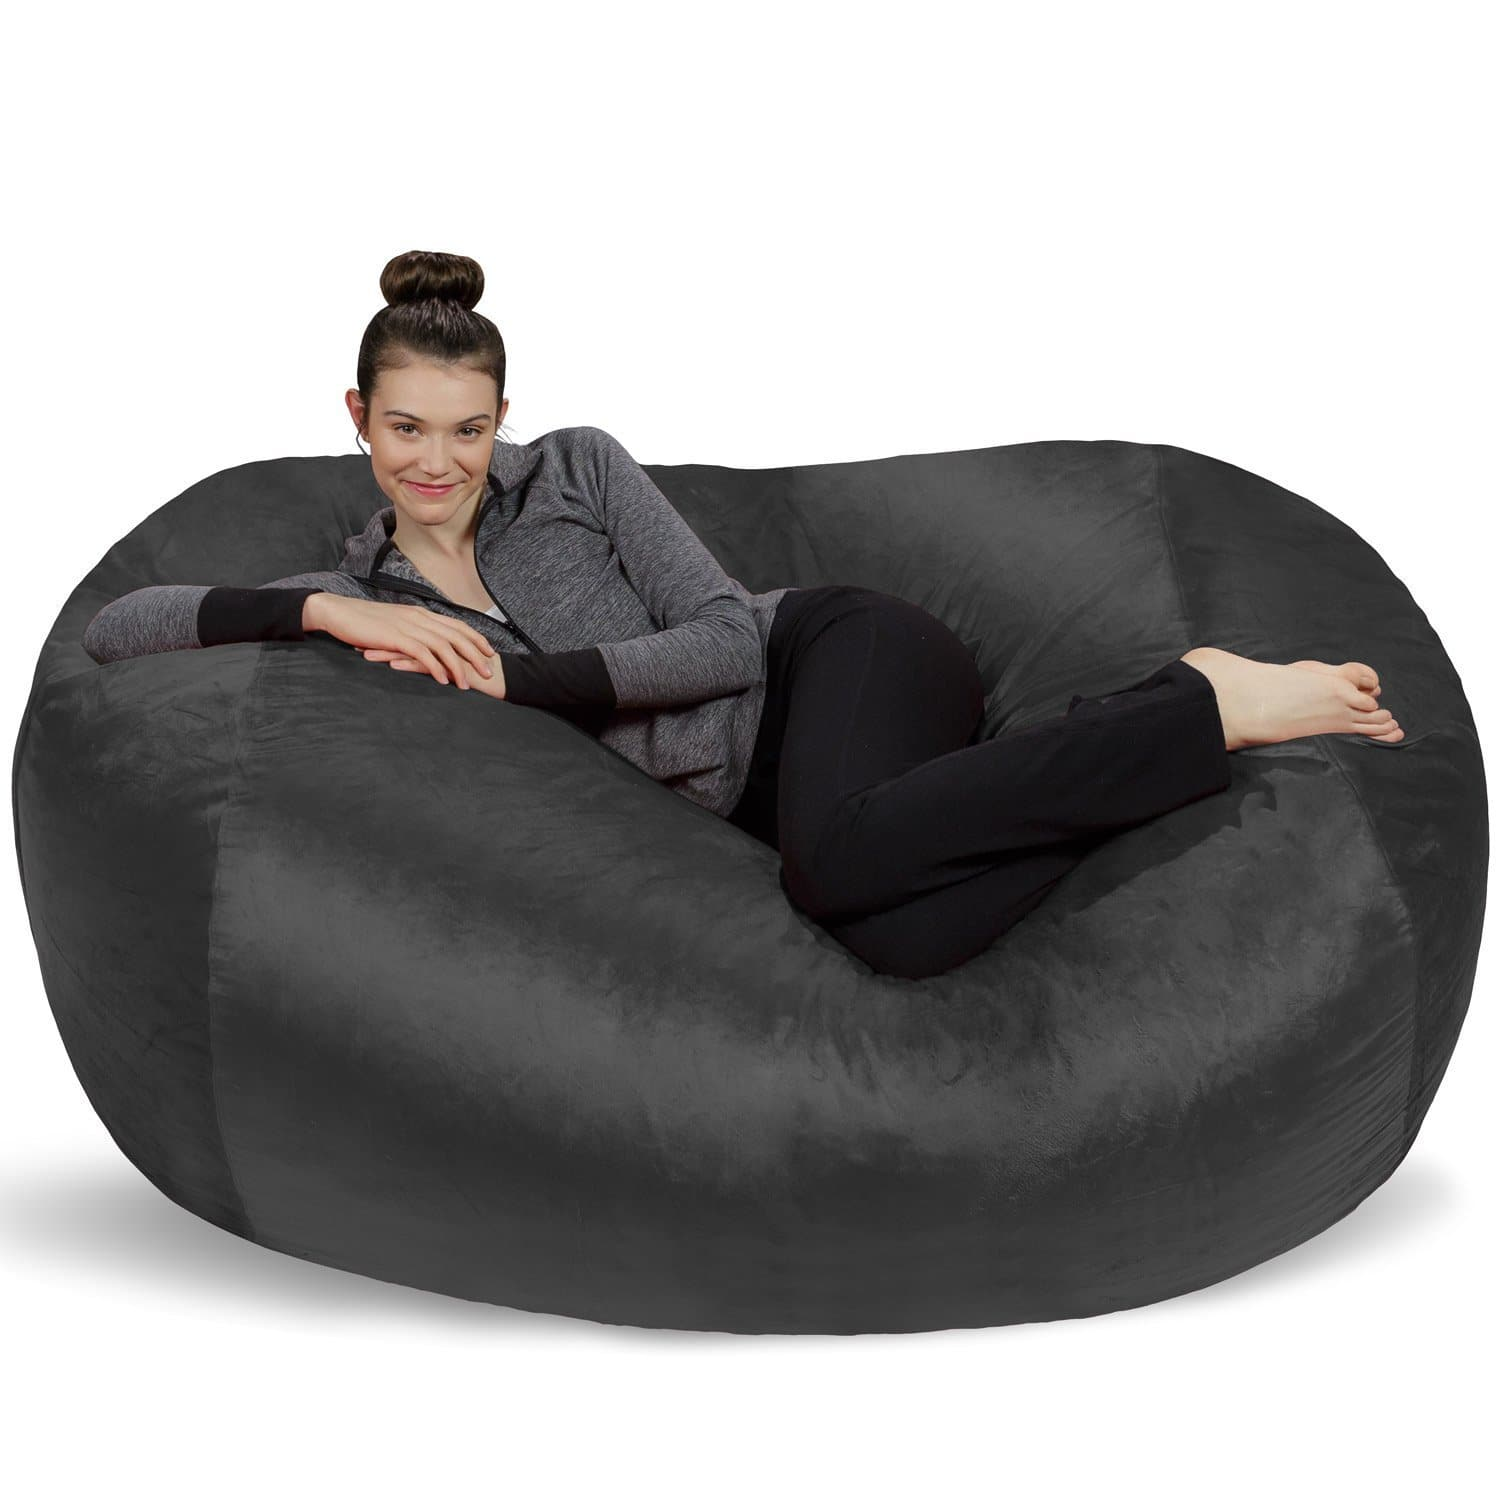 Beanbag Chair Top 10 Best Bean Bag Chairs In 2018 Topreviewproducts